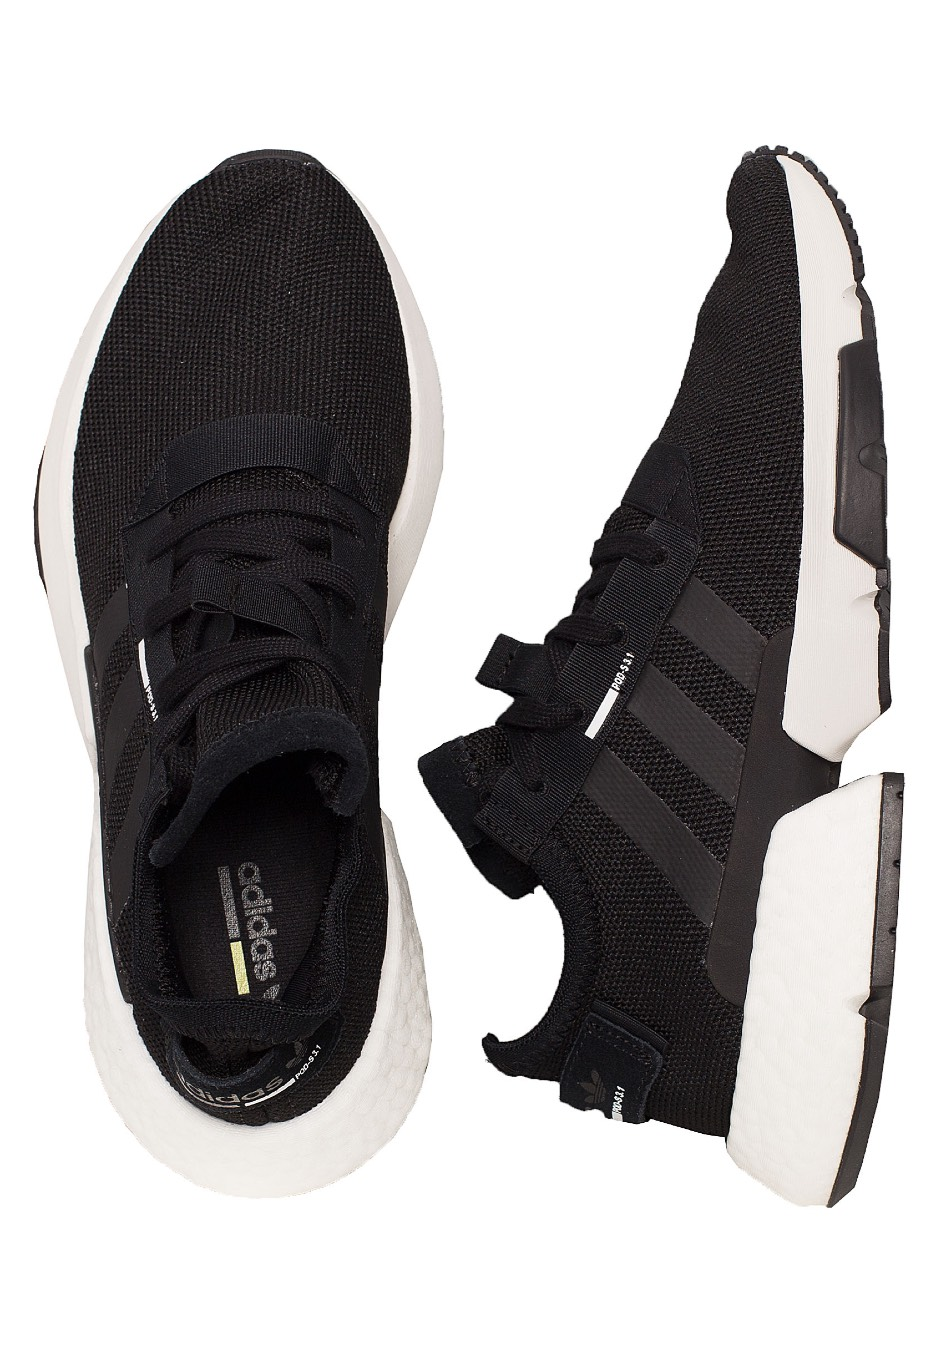 b8616de8a845 Adidas - POD-S3.1 Core Black Core Black Ftwr White - Shoes - Impericon.com  AU